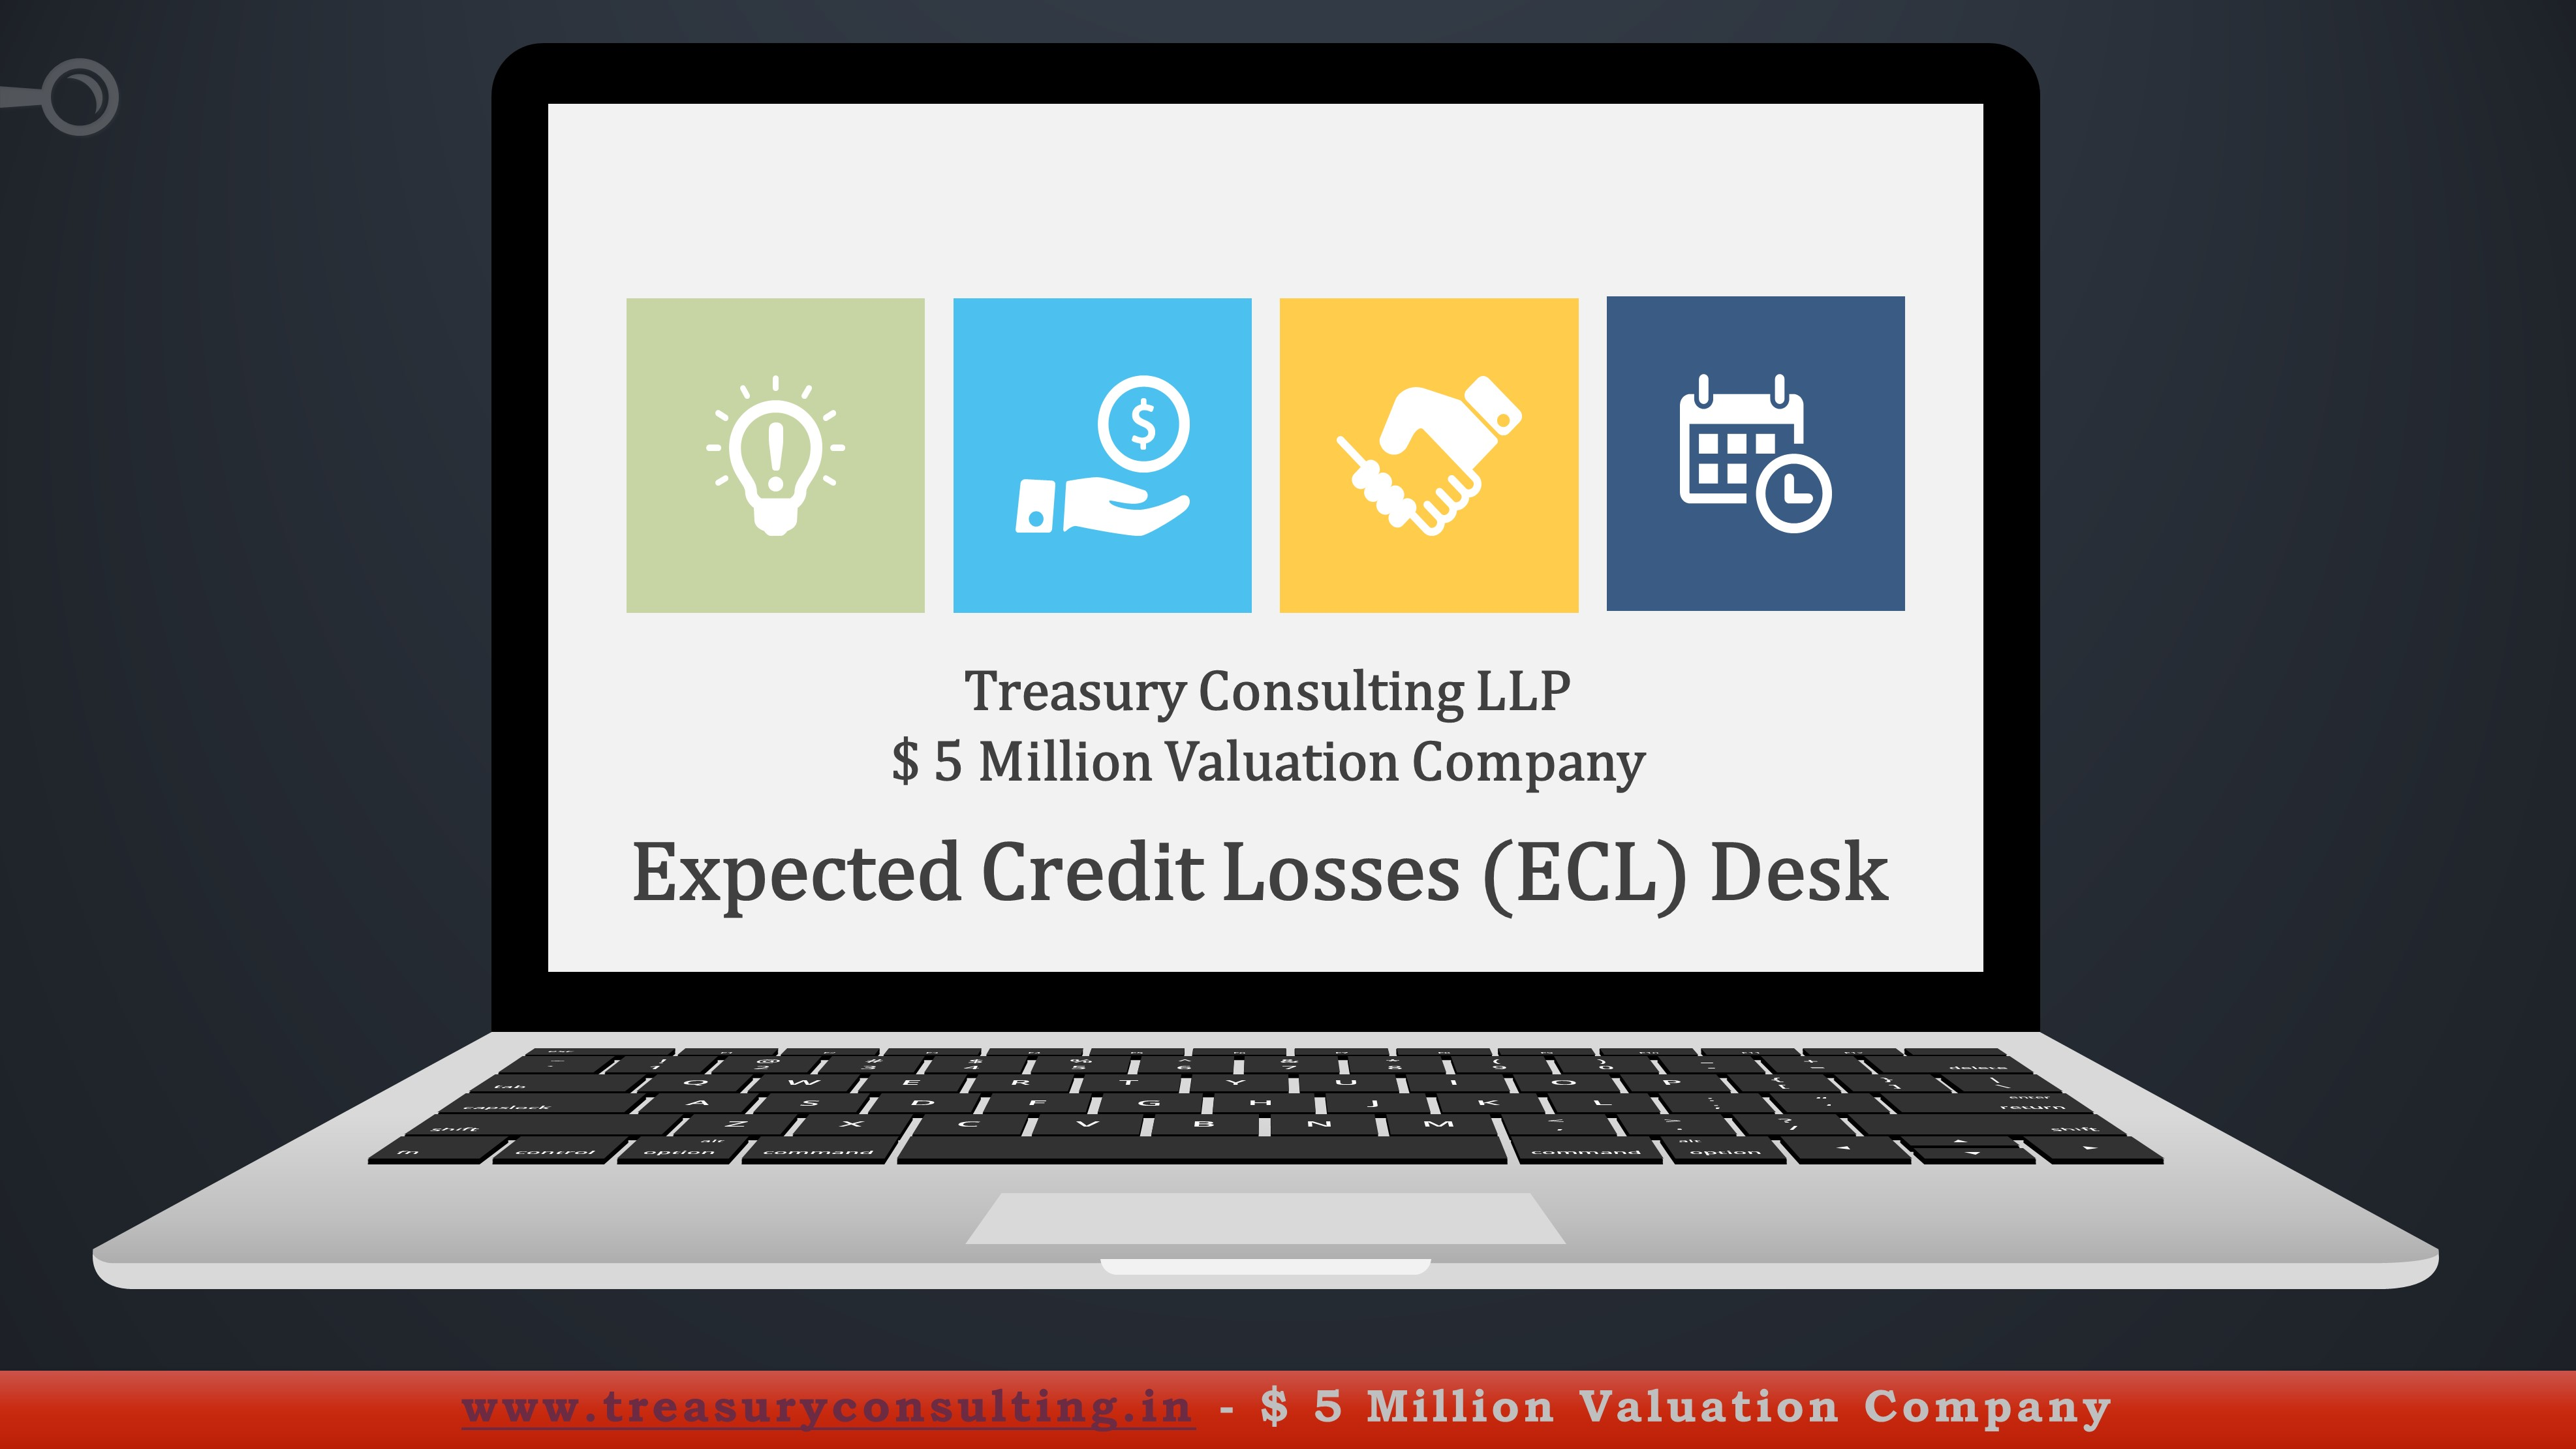 Expected Credit Losses Desk